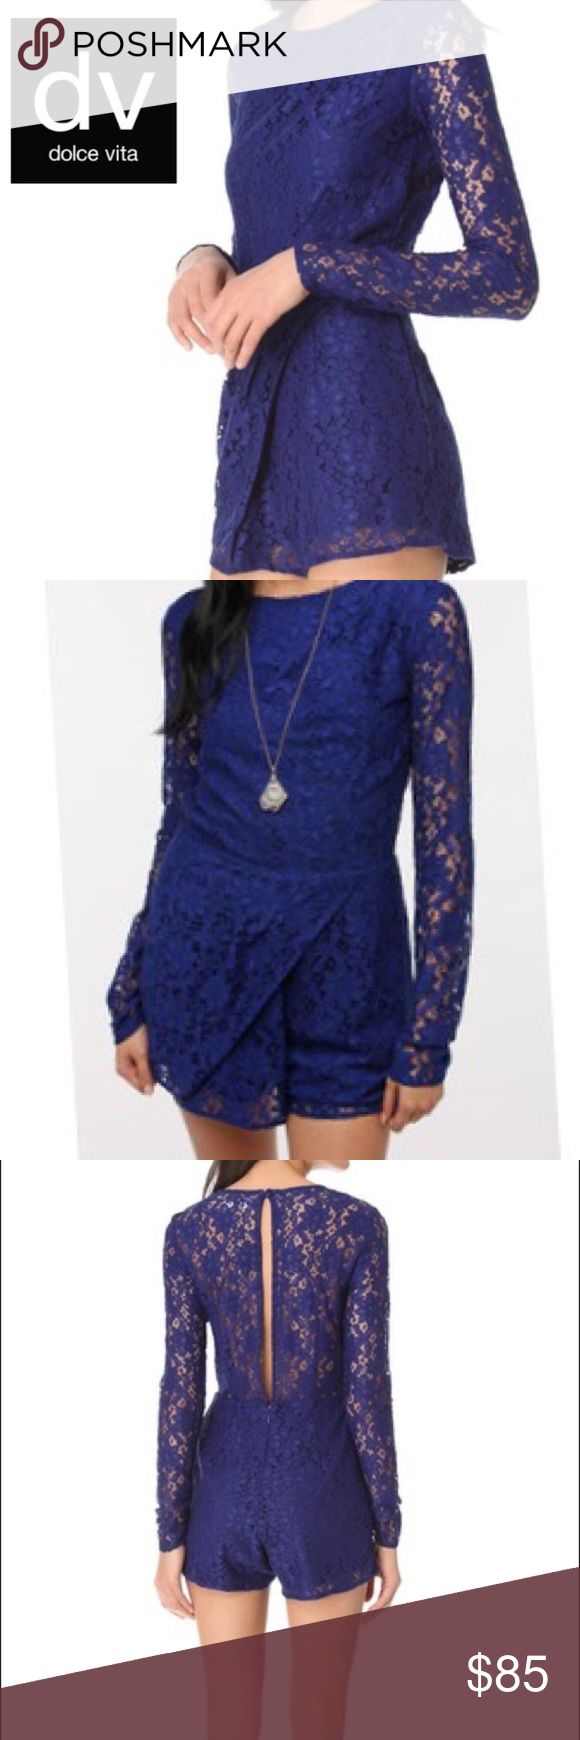 """Dolce Vita - Jaiden Lace Romper Lace one-piece from Dolce Vita. Cut with a fitted top and trimmed with an overlay at the shorts. Open at the sheer back with a button closure at the neck. Lined throughout except at the sheer back; zipper closure. 31.5"""" from shoulder to hem. Inseam 4"""". Rise 12"""". Leg opening 13"""" flat. Dolce Vita Dresses"""